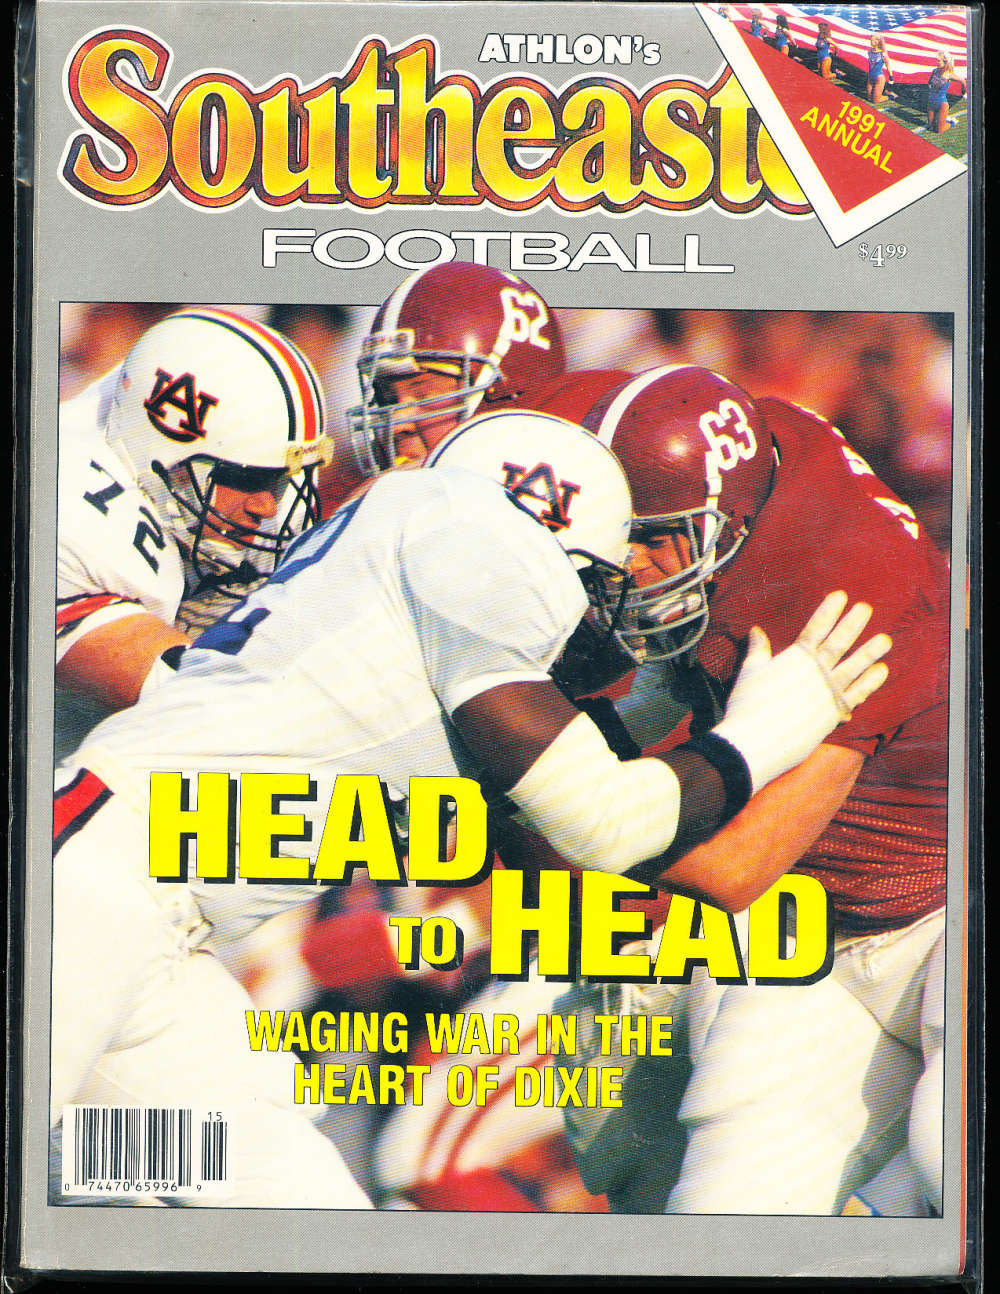 1991 SEC Southeastern Conference alabama Athlon National College Football Annual Yearbook Guide